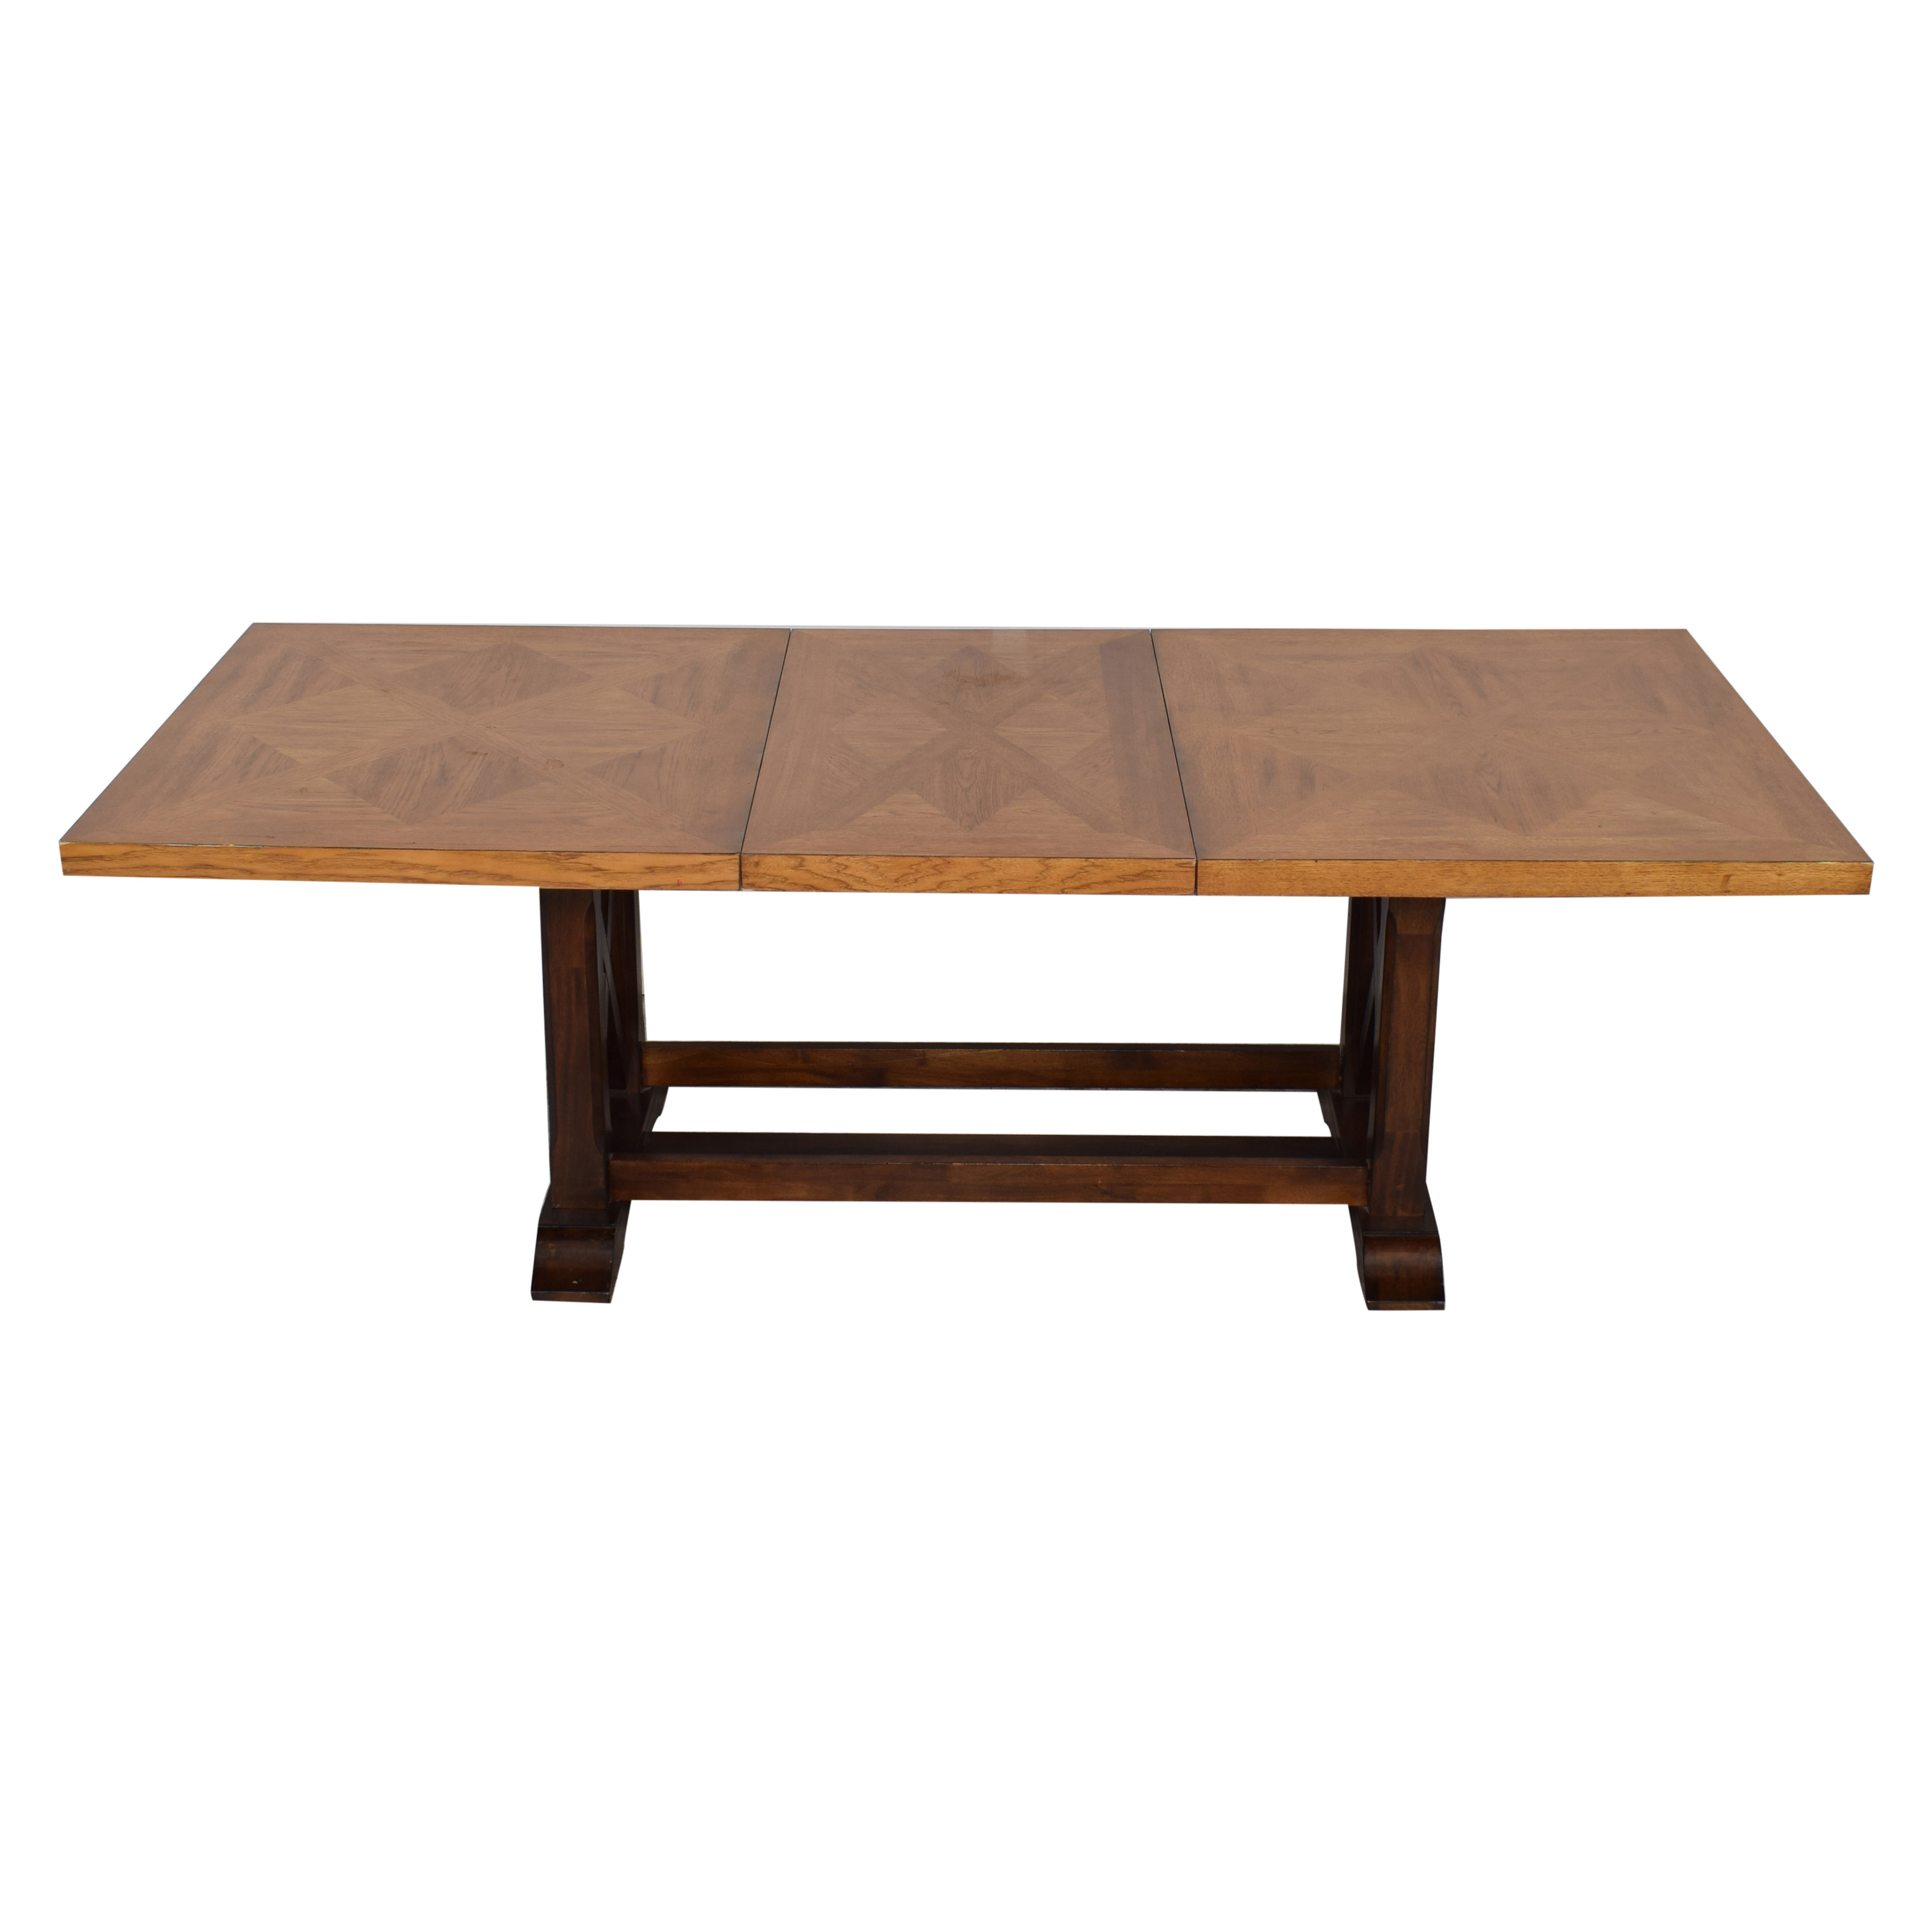 Klaussner Klaussner Dayton Extended Dining Table second hand